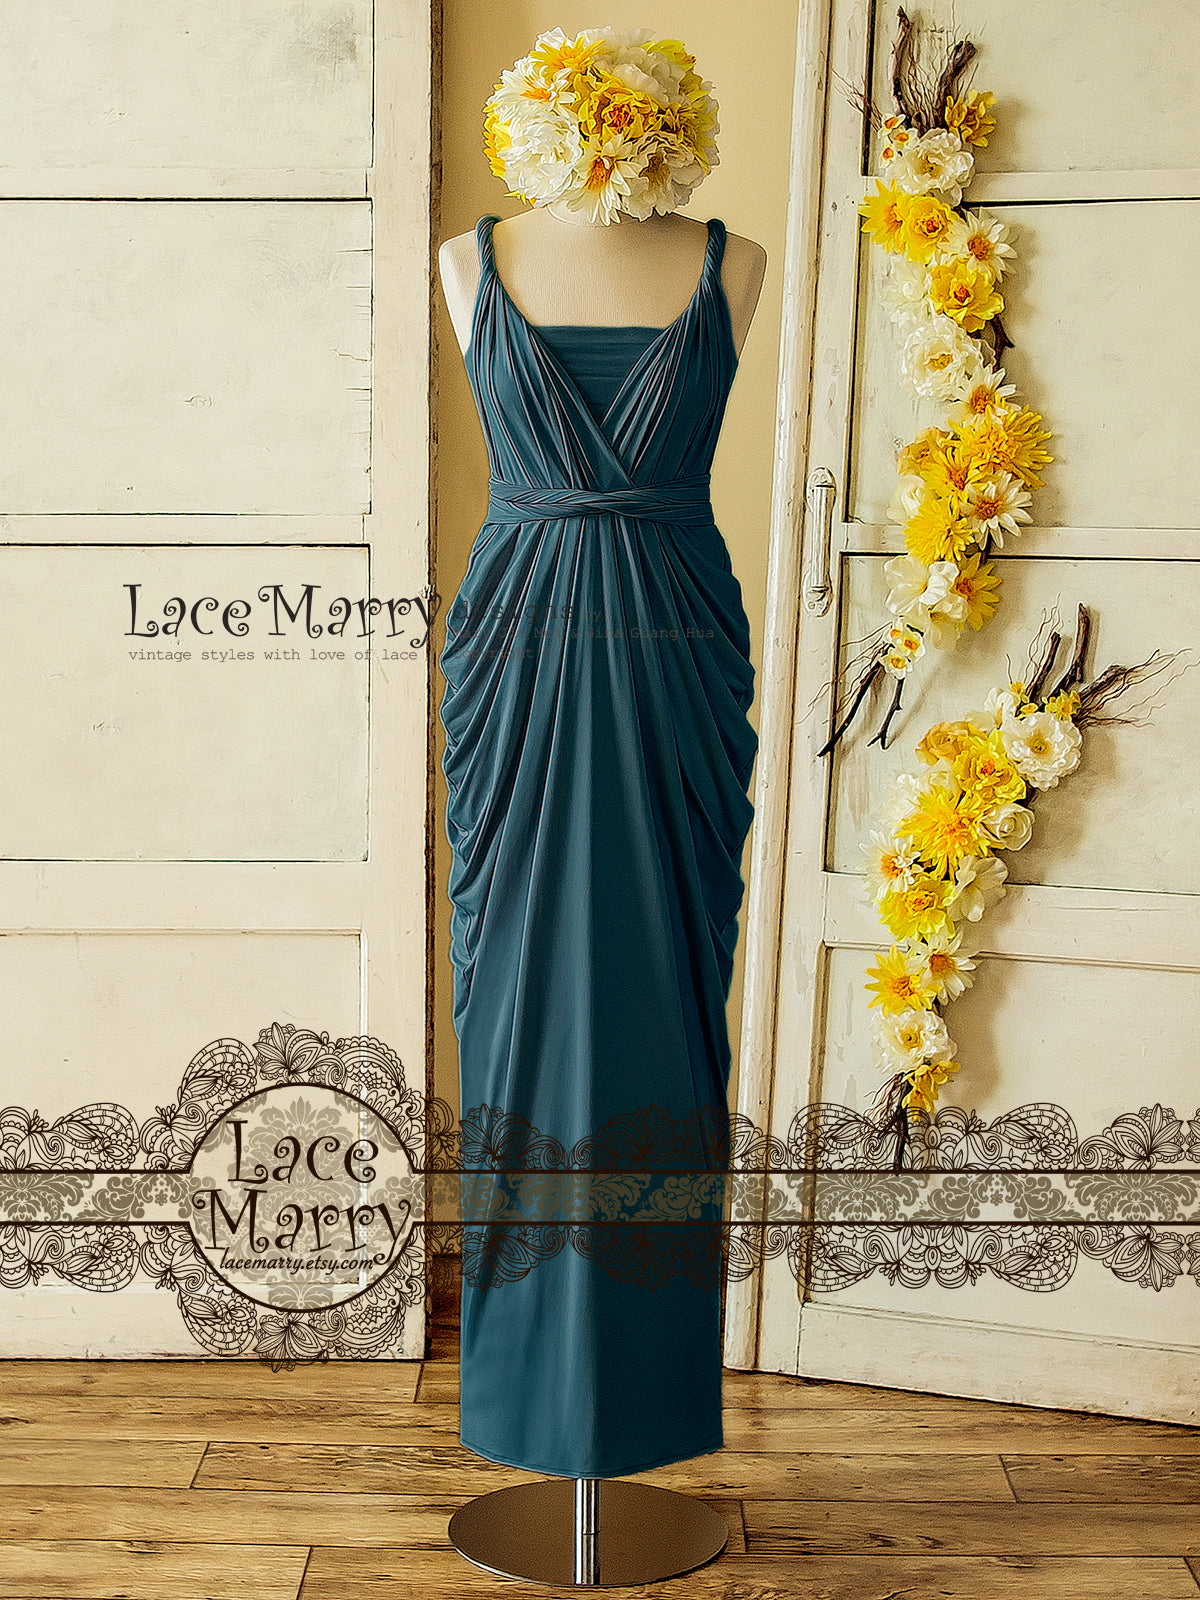 Ocean Blue Infinity Dress for Beach Bridal Party